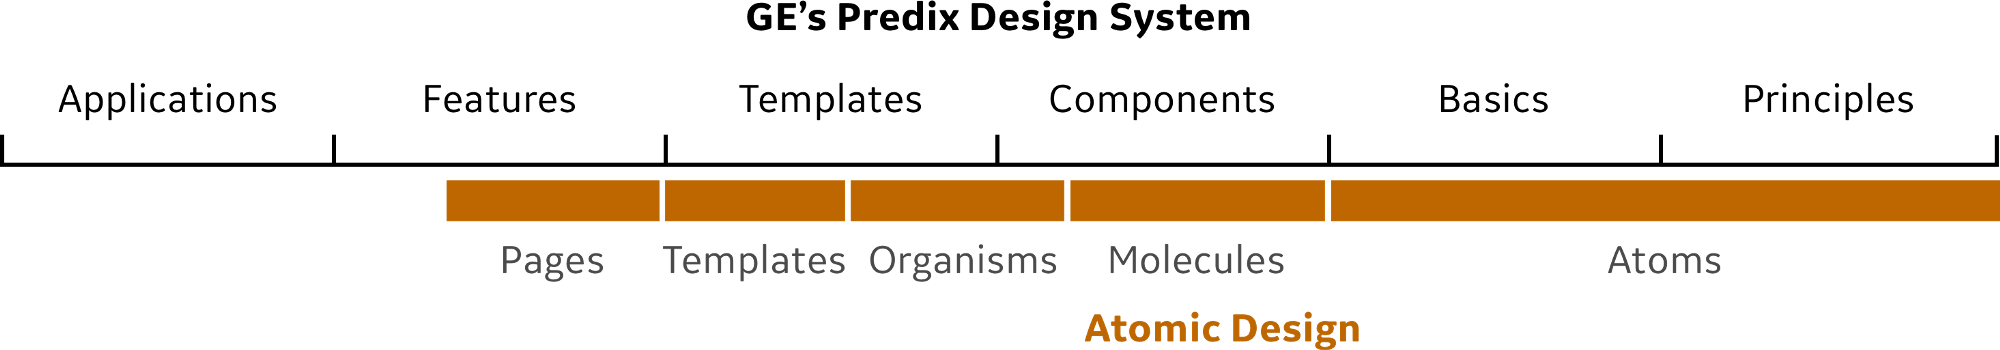 Predix Design System vs Atomic Design